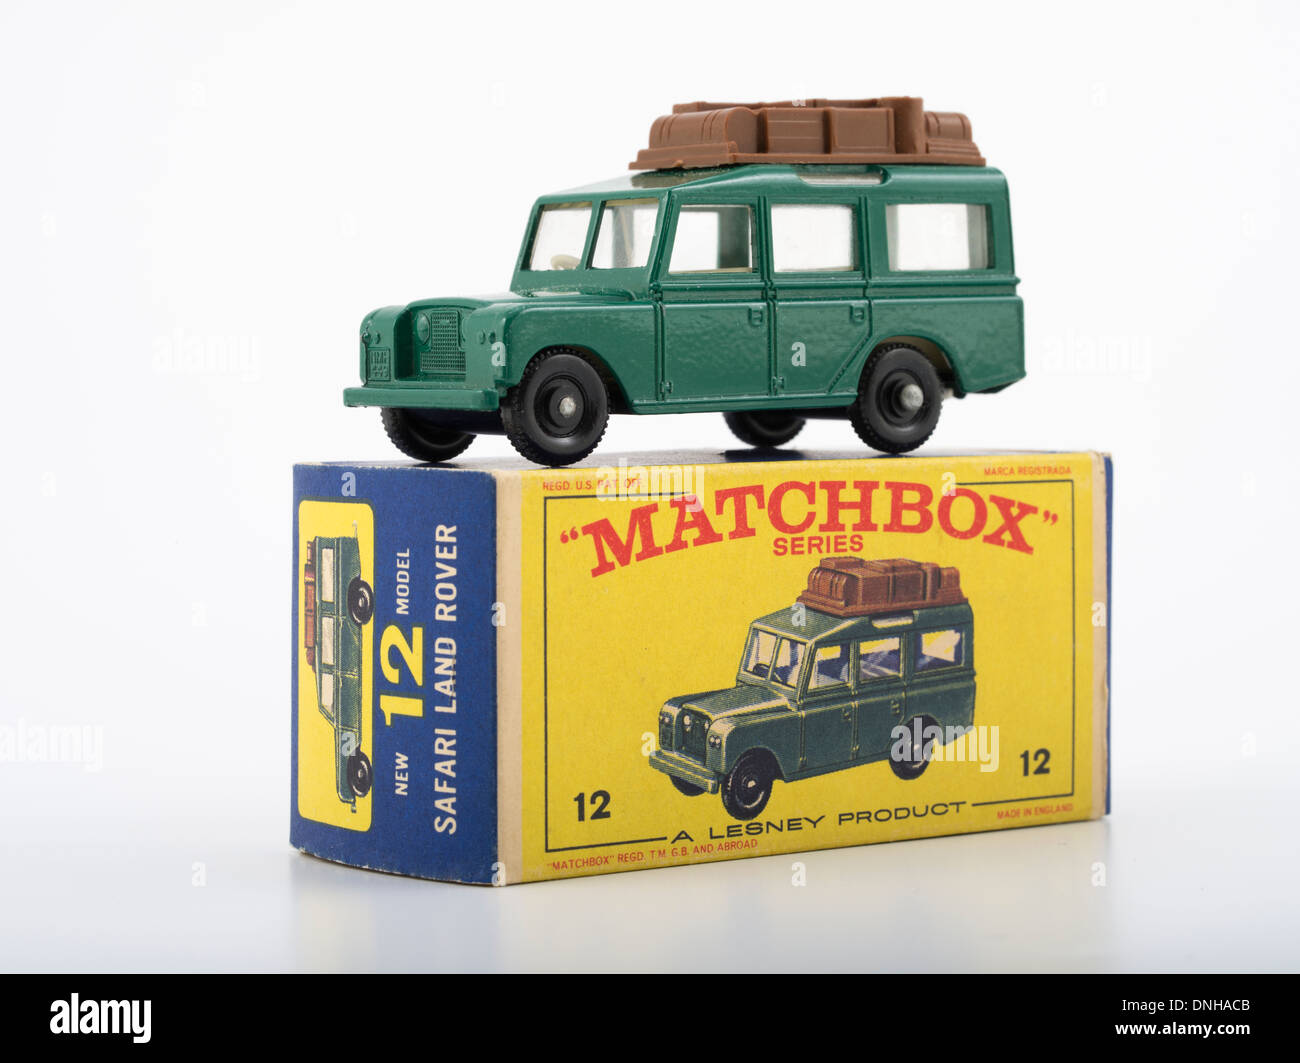 Matchbox Die Cast Toy Cars 12 Land Rover Safari Produced By